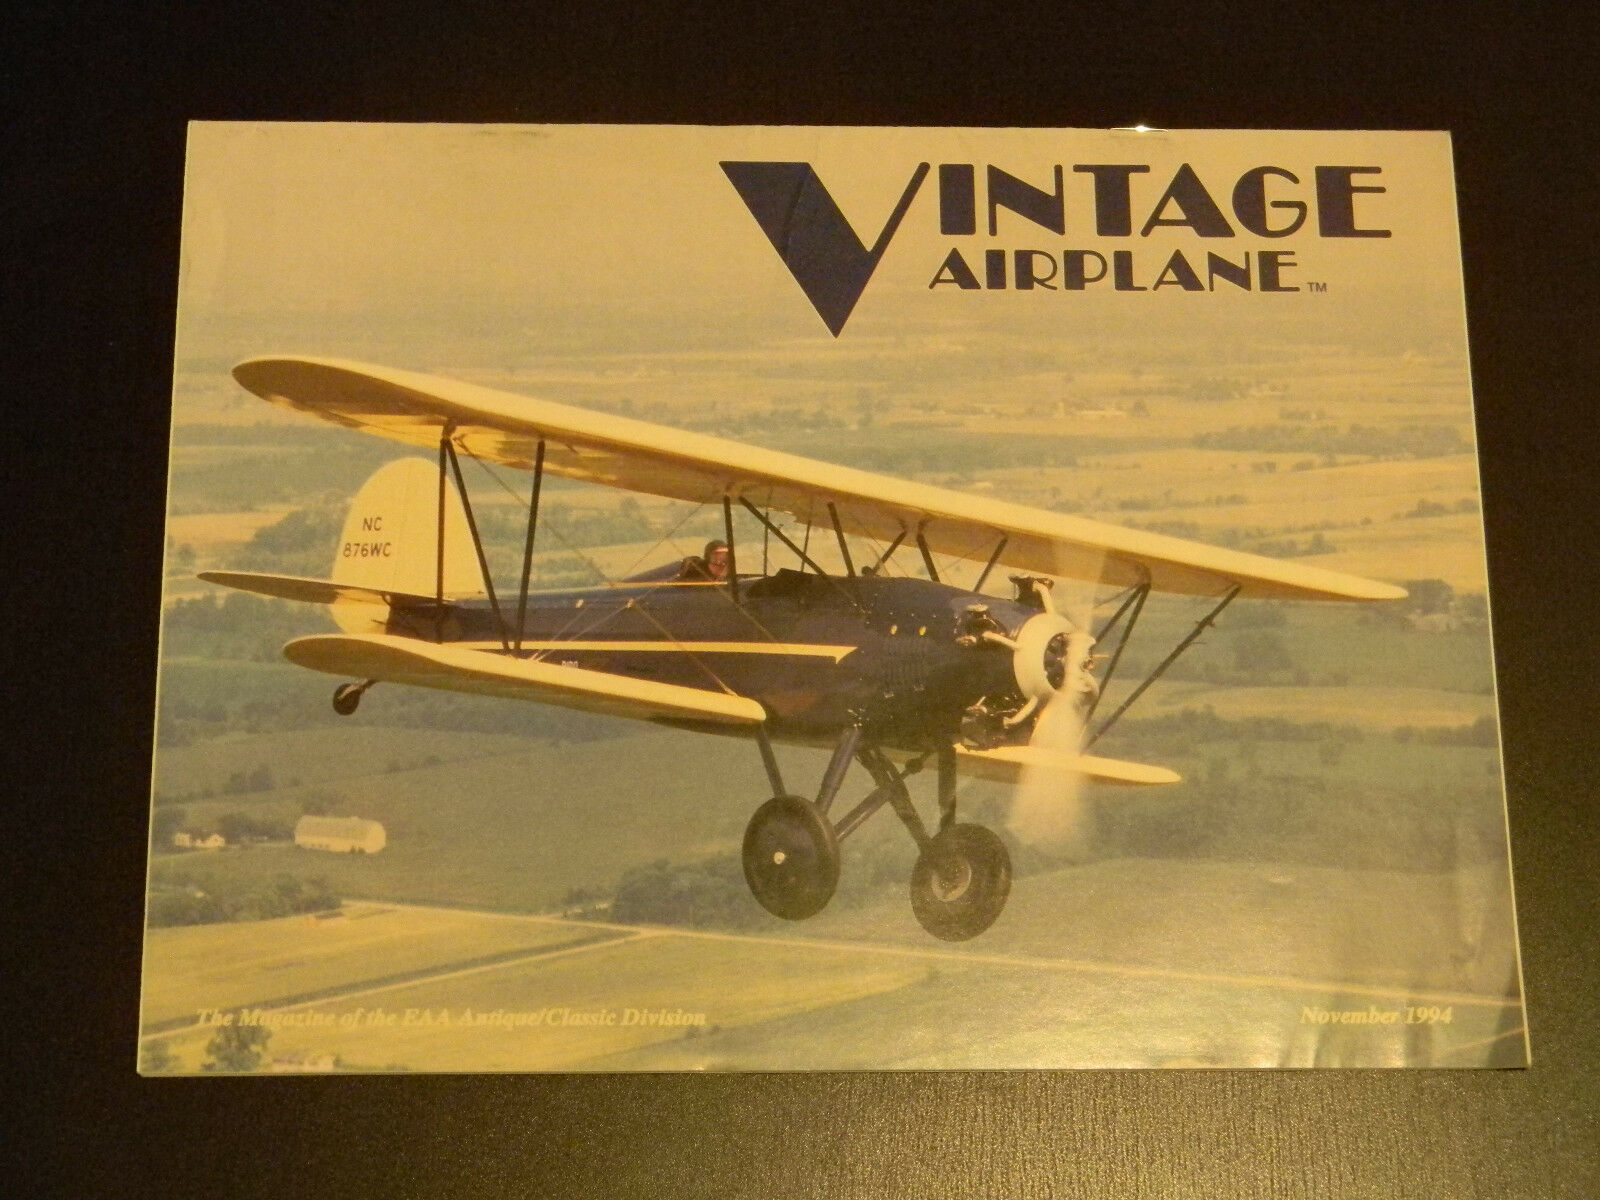 The Vintage Airplane November 1994 Vol 22 #11 The 1929 Wallace ...